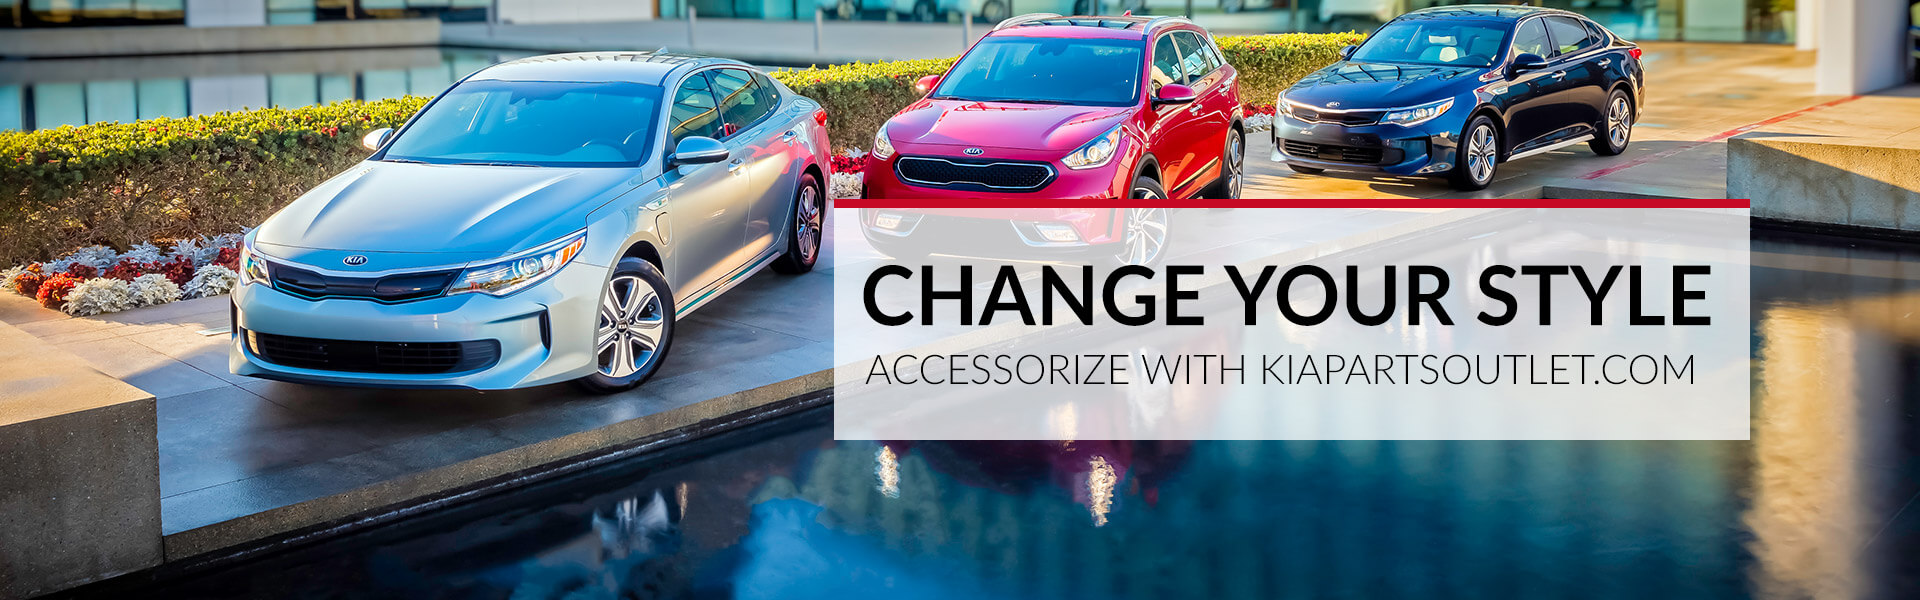 Shop Kia accessories